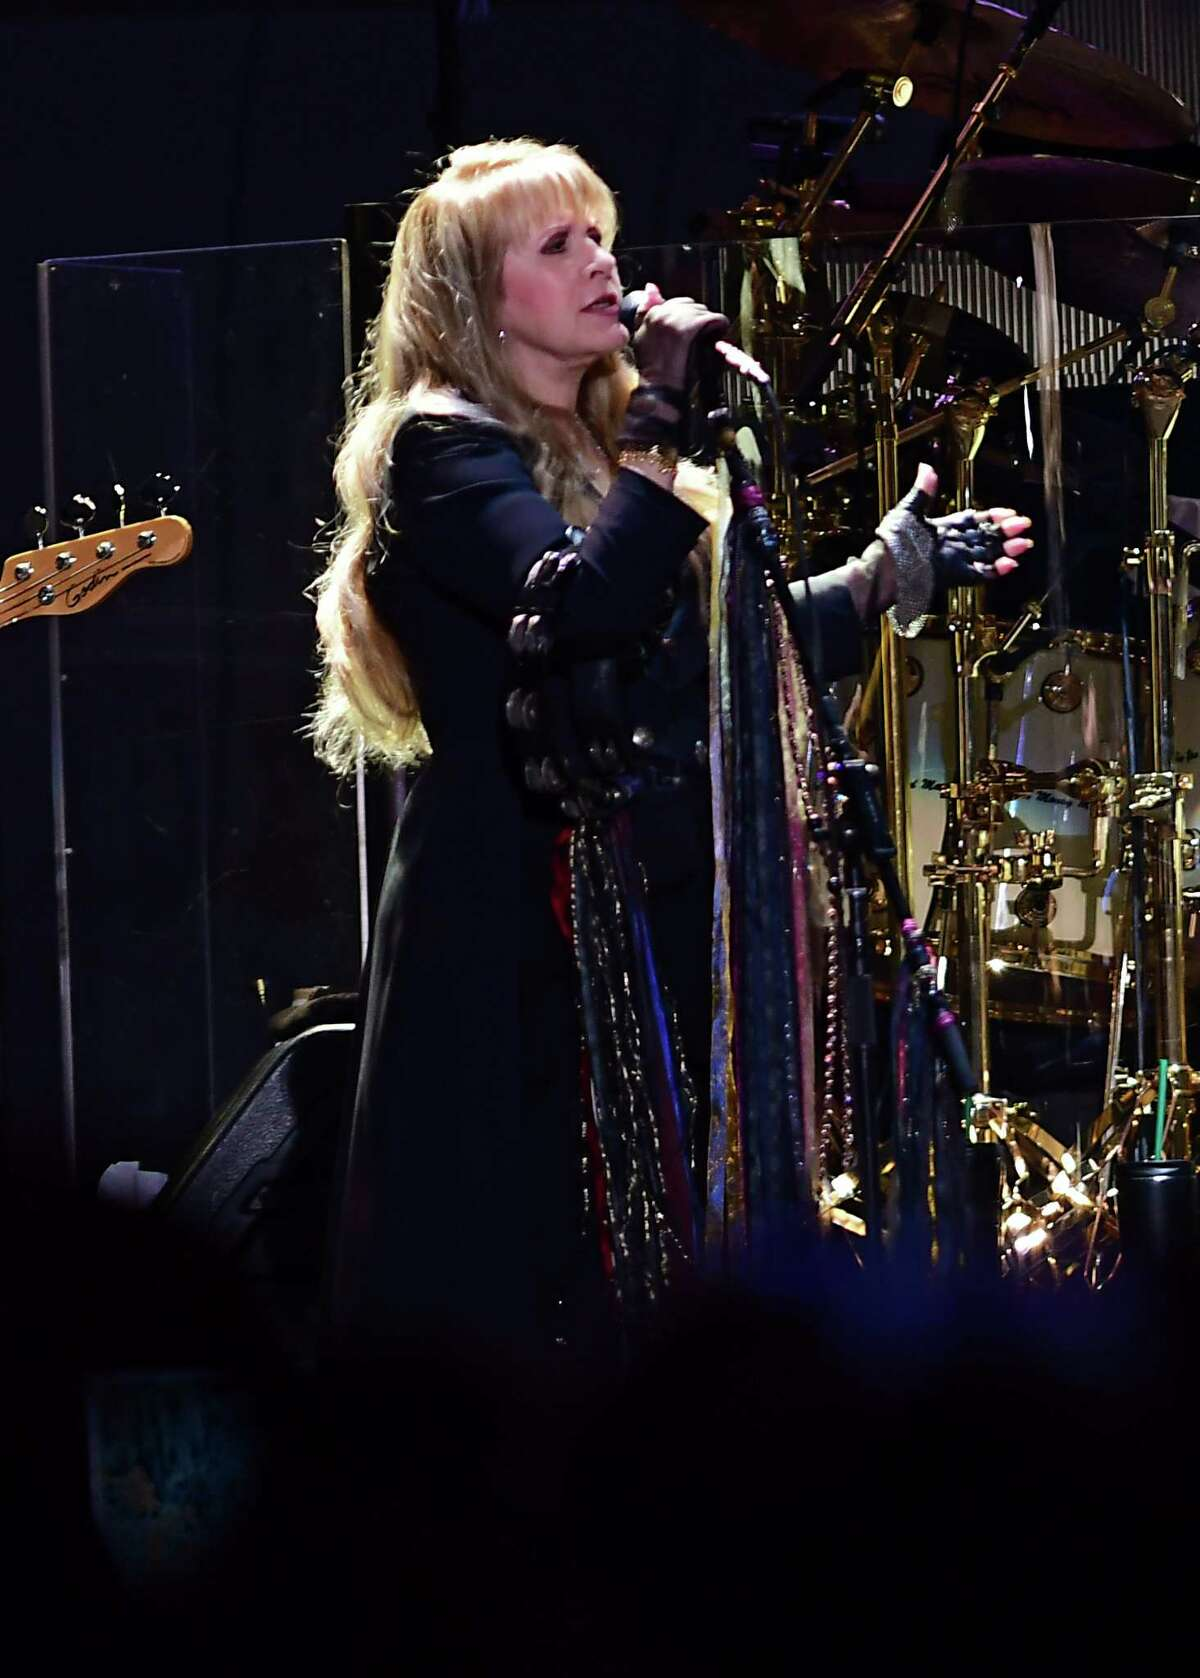 """Stevie Nicks sings """"The Chain"""" as Fleetwood Mac performs at the Times Union Center during their farewell tour on Wednesday, March 20, 2019 in Albany, N.Y. (Lori Van Buren/Times Union)"""